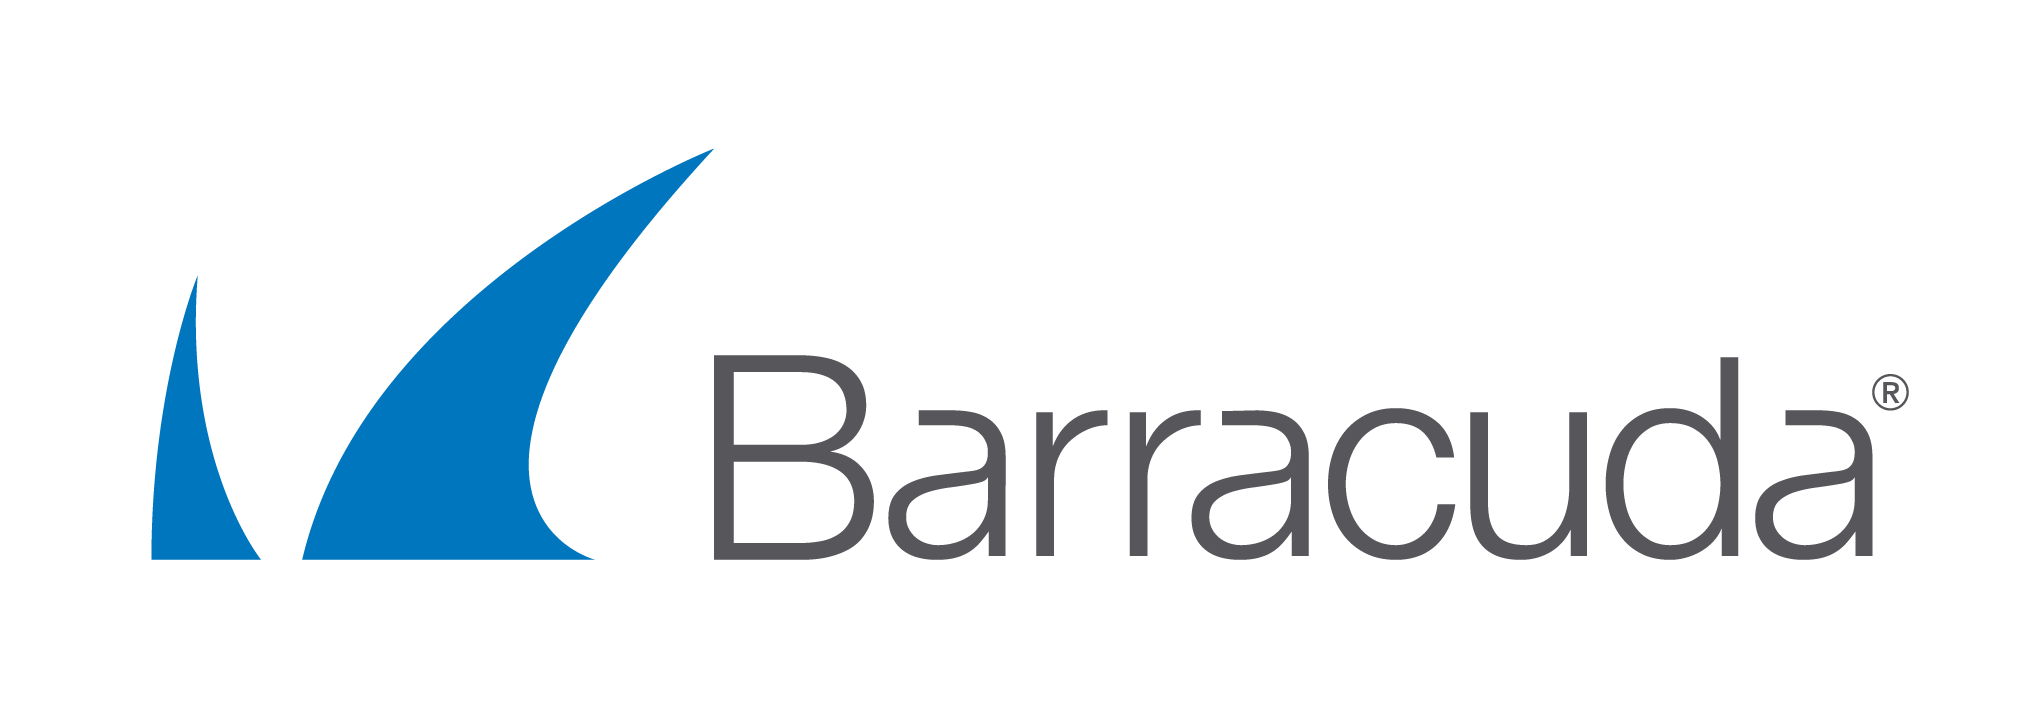 Barracuda Firewall Management